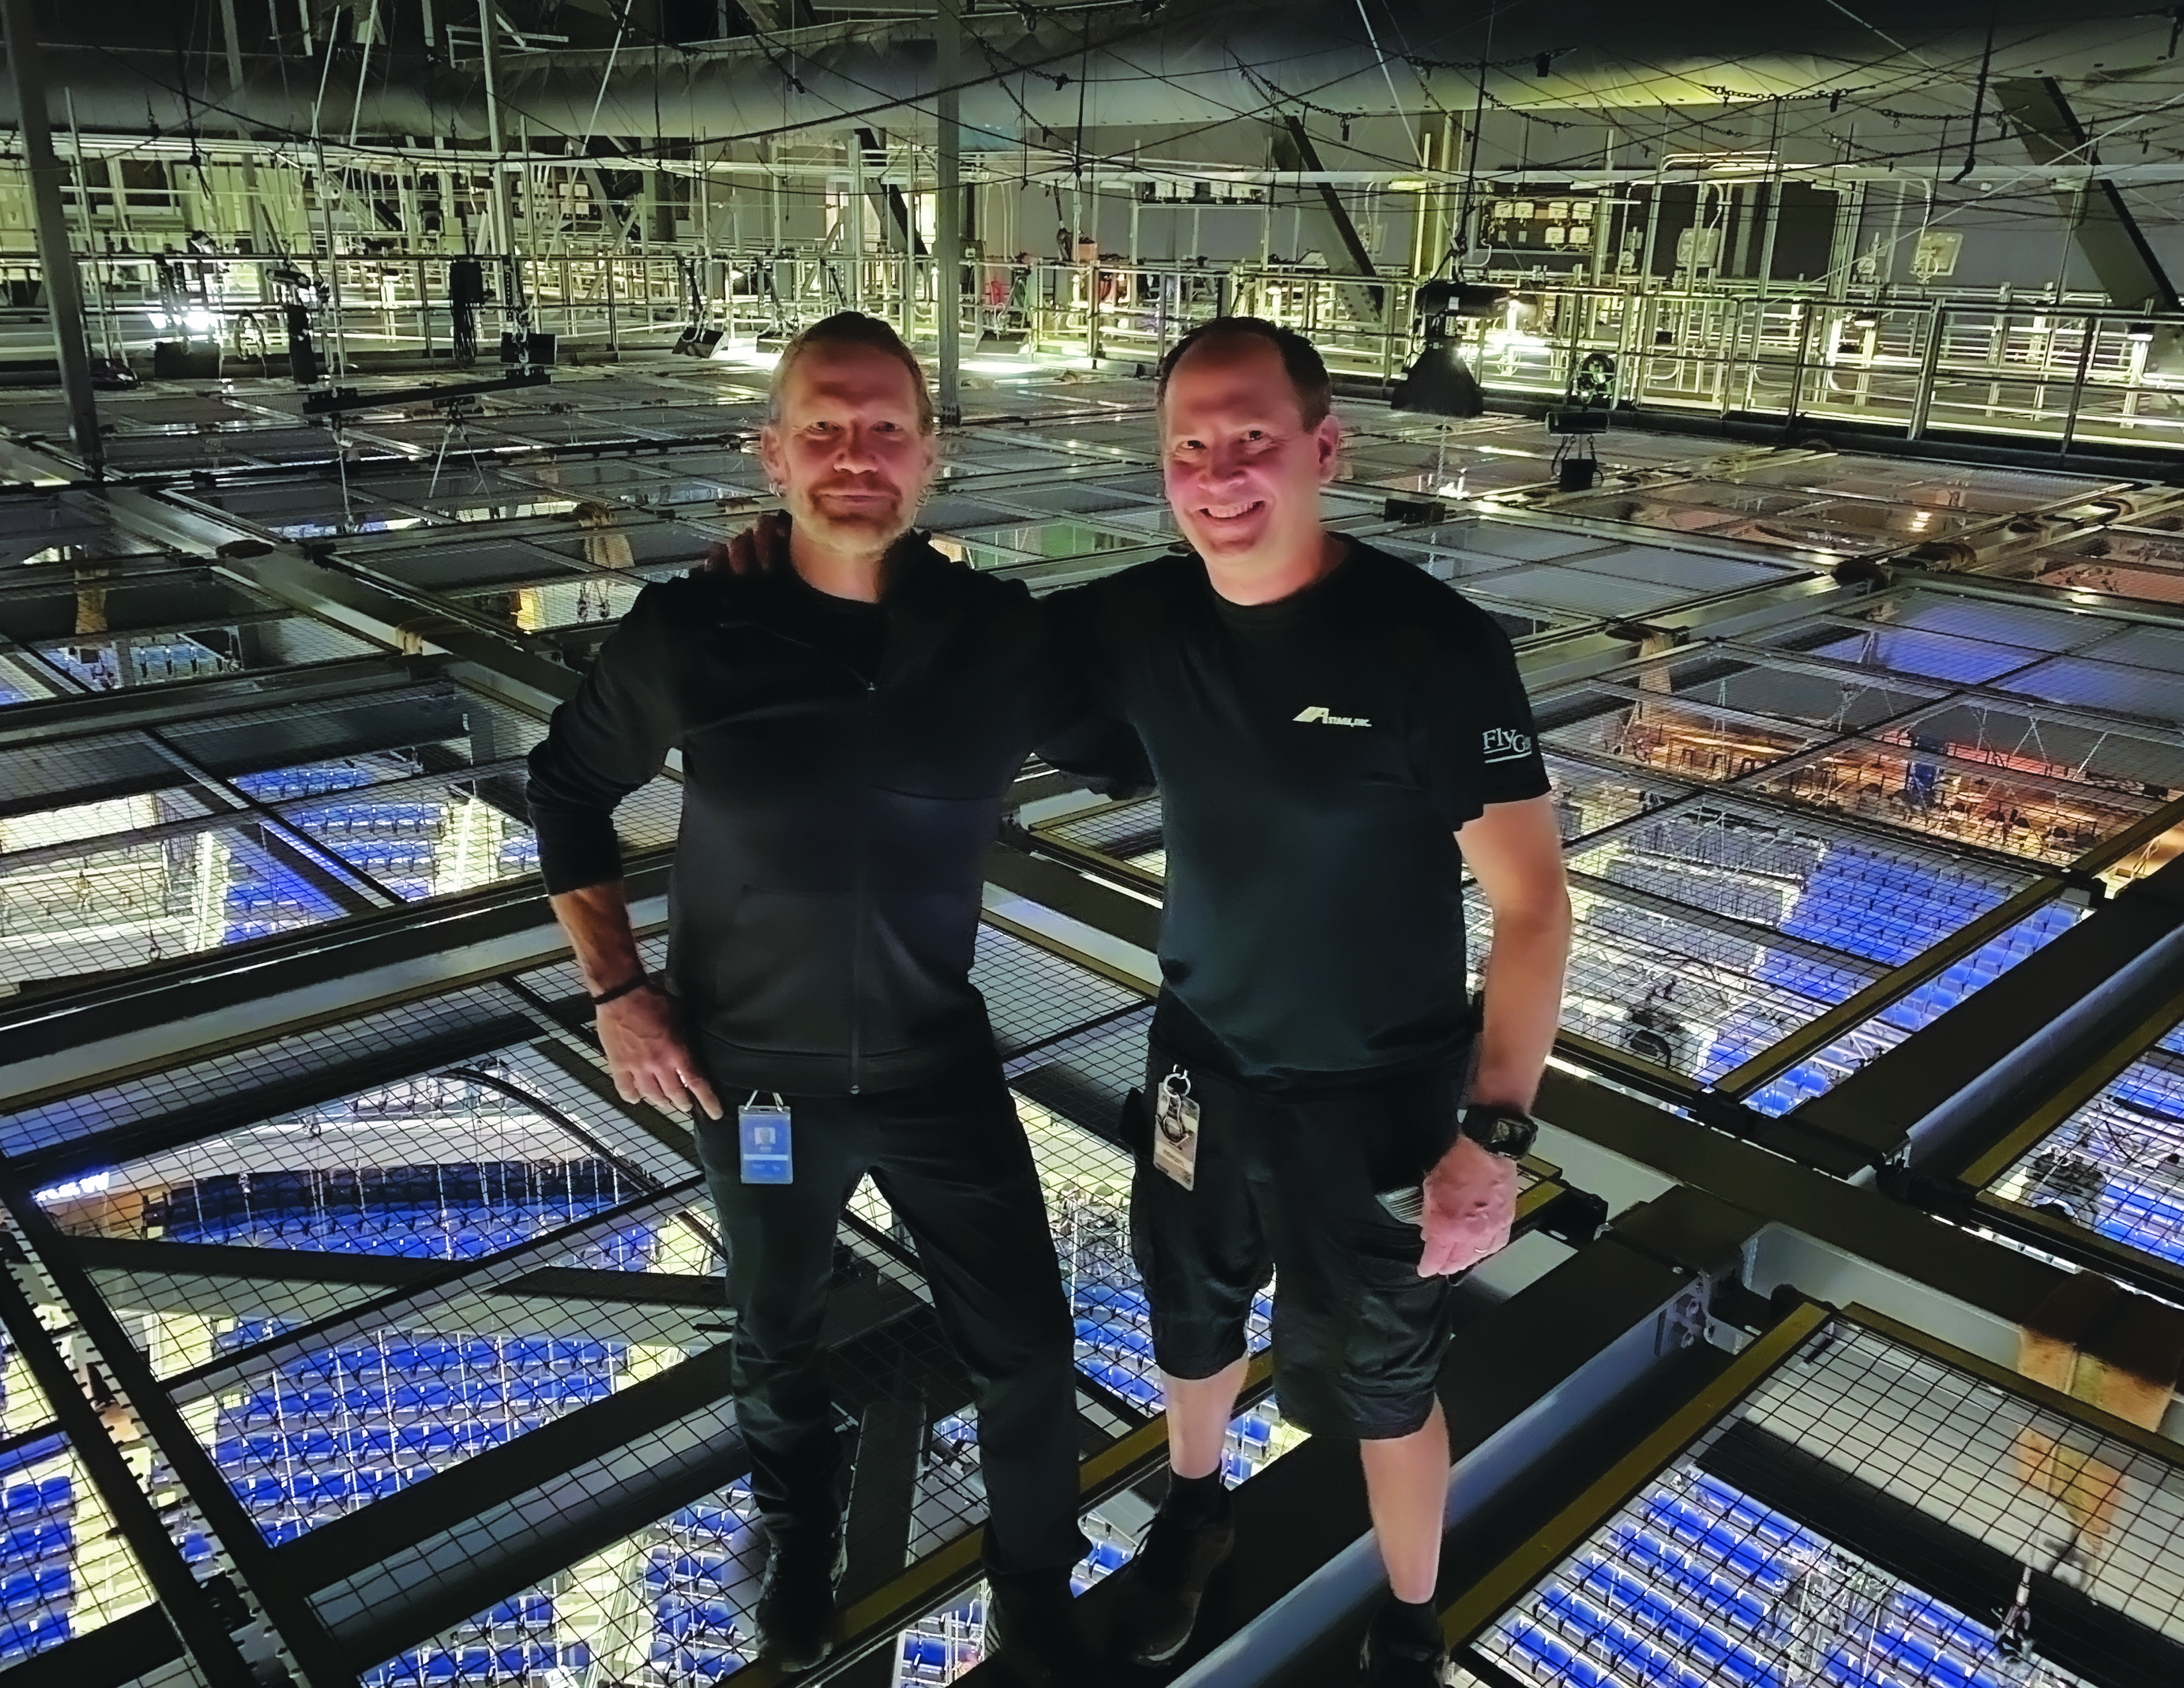 Bill Rengstl and Bob Powers on the SkyDeck™ at Chase Center